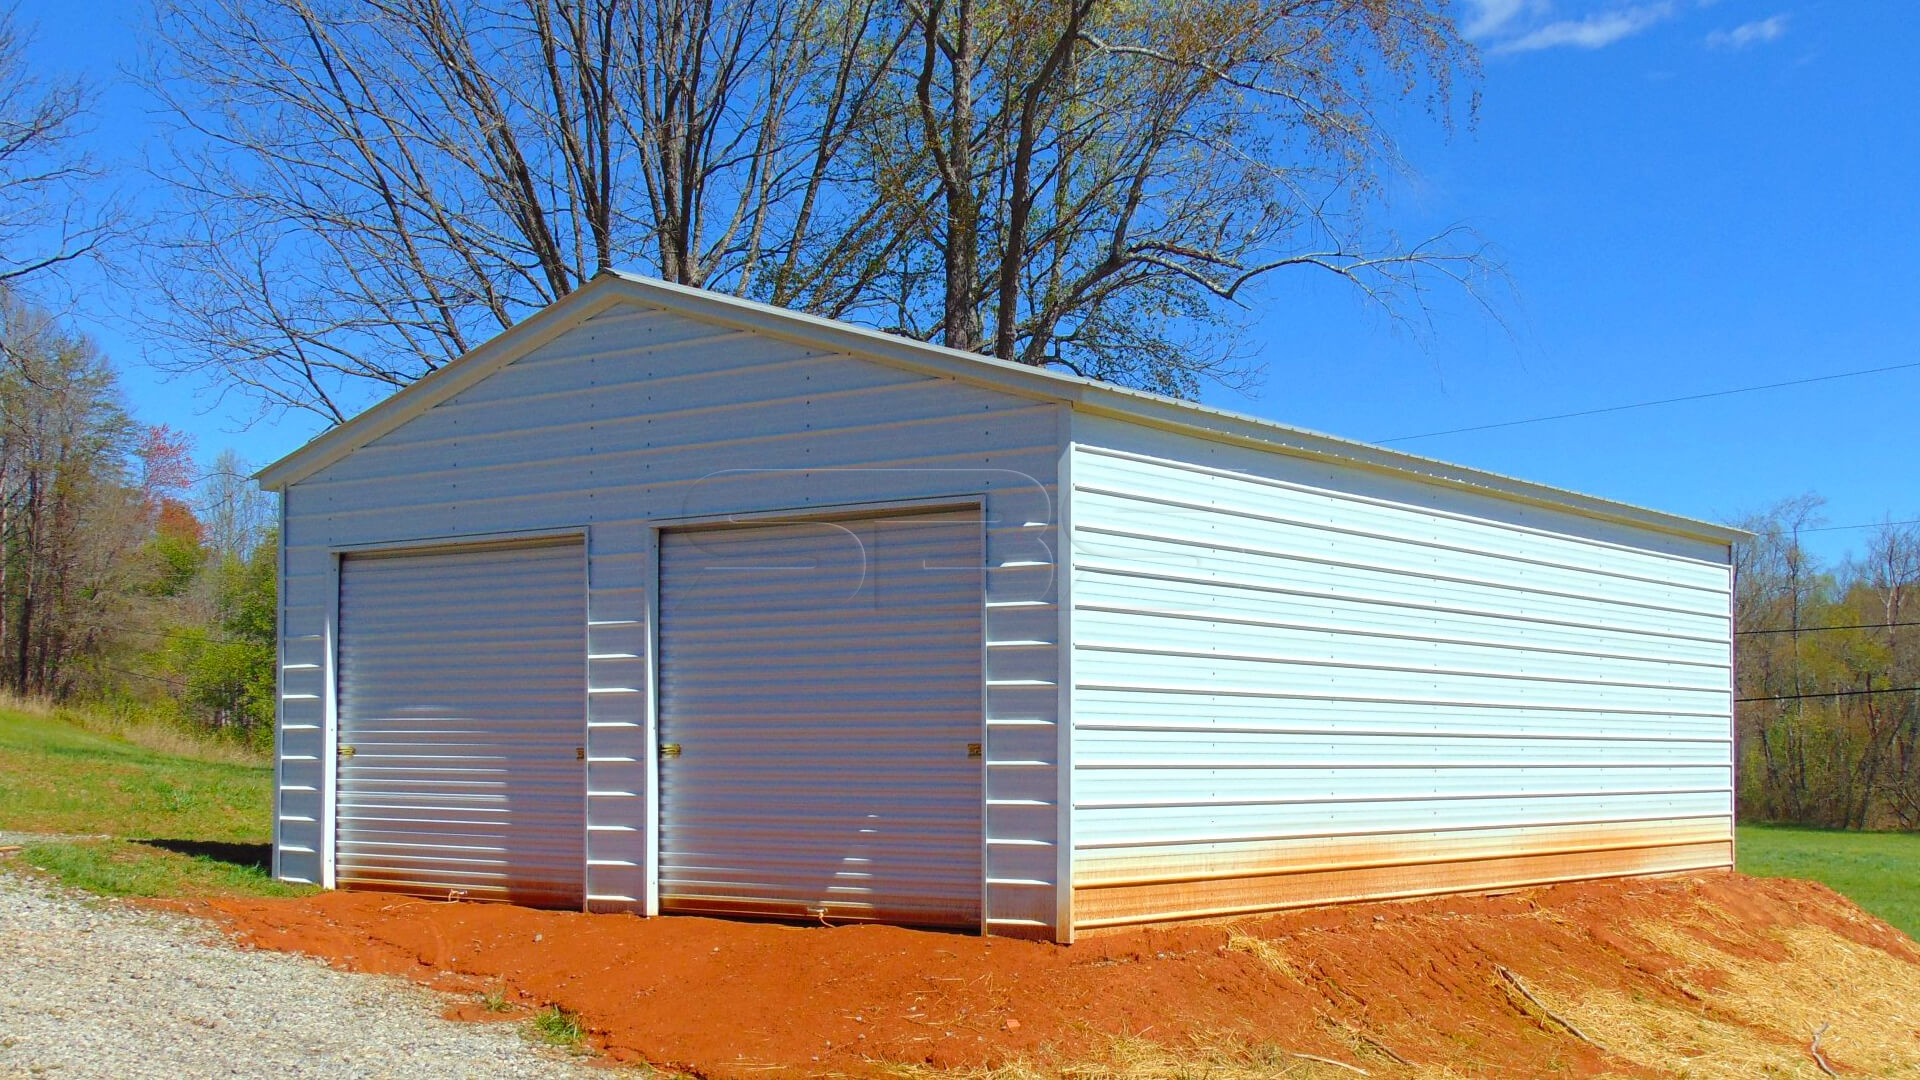 22'x36' Vertical Roof Garage Workshop